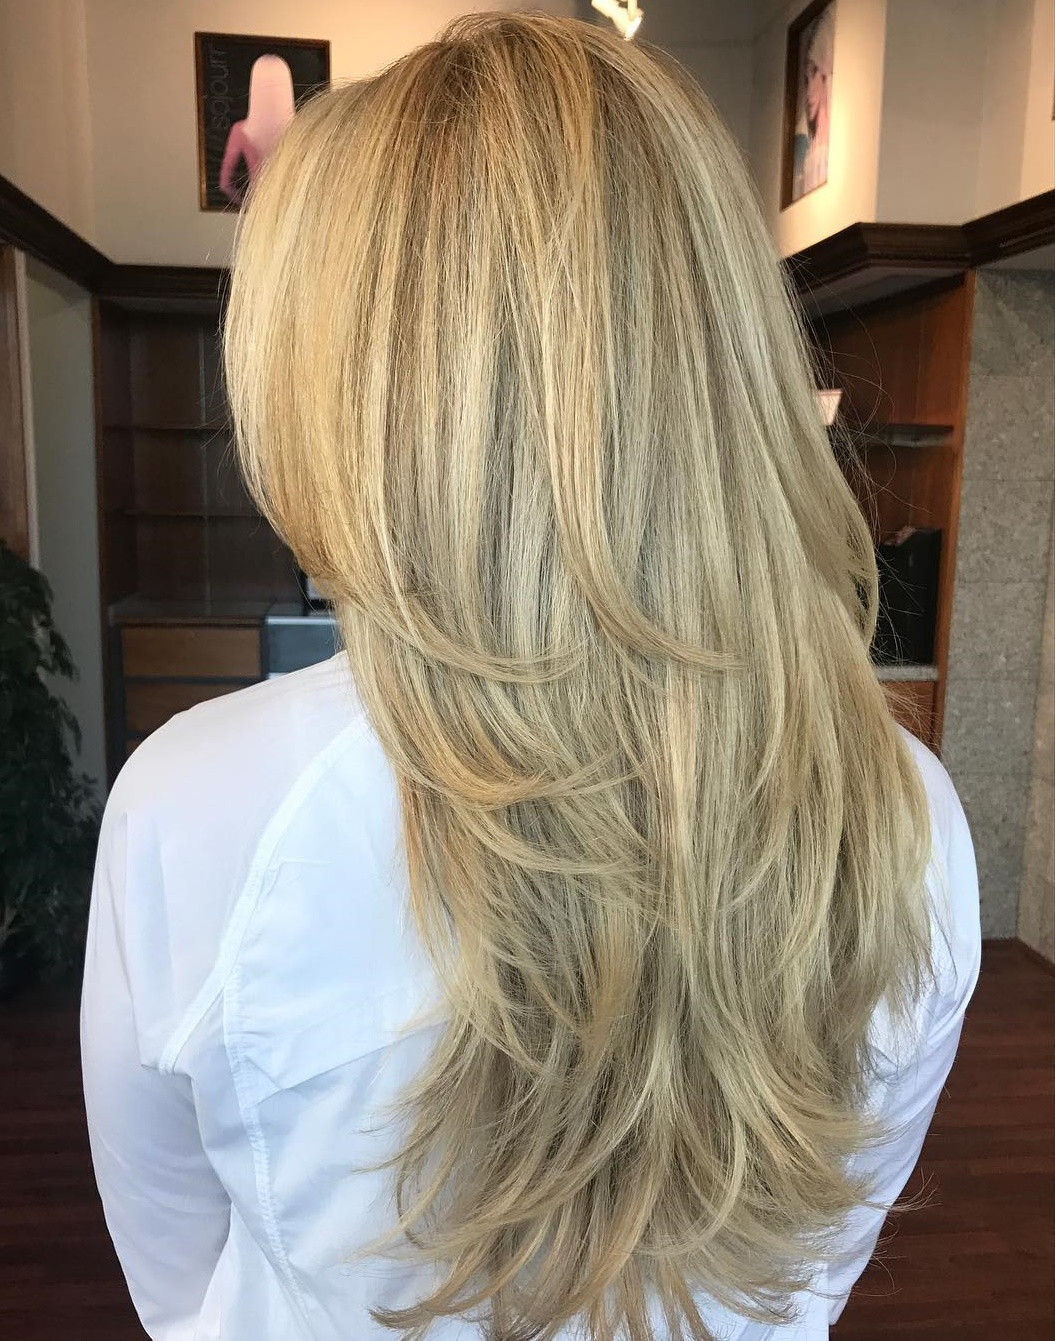 Long Layered Blonde Hairstyle